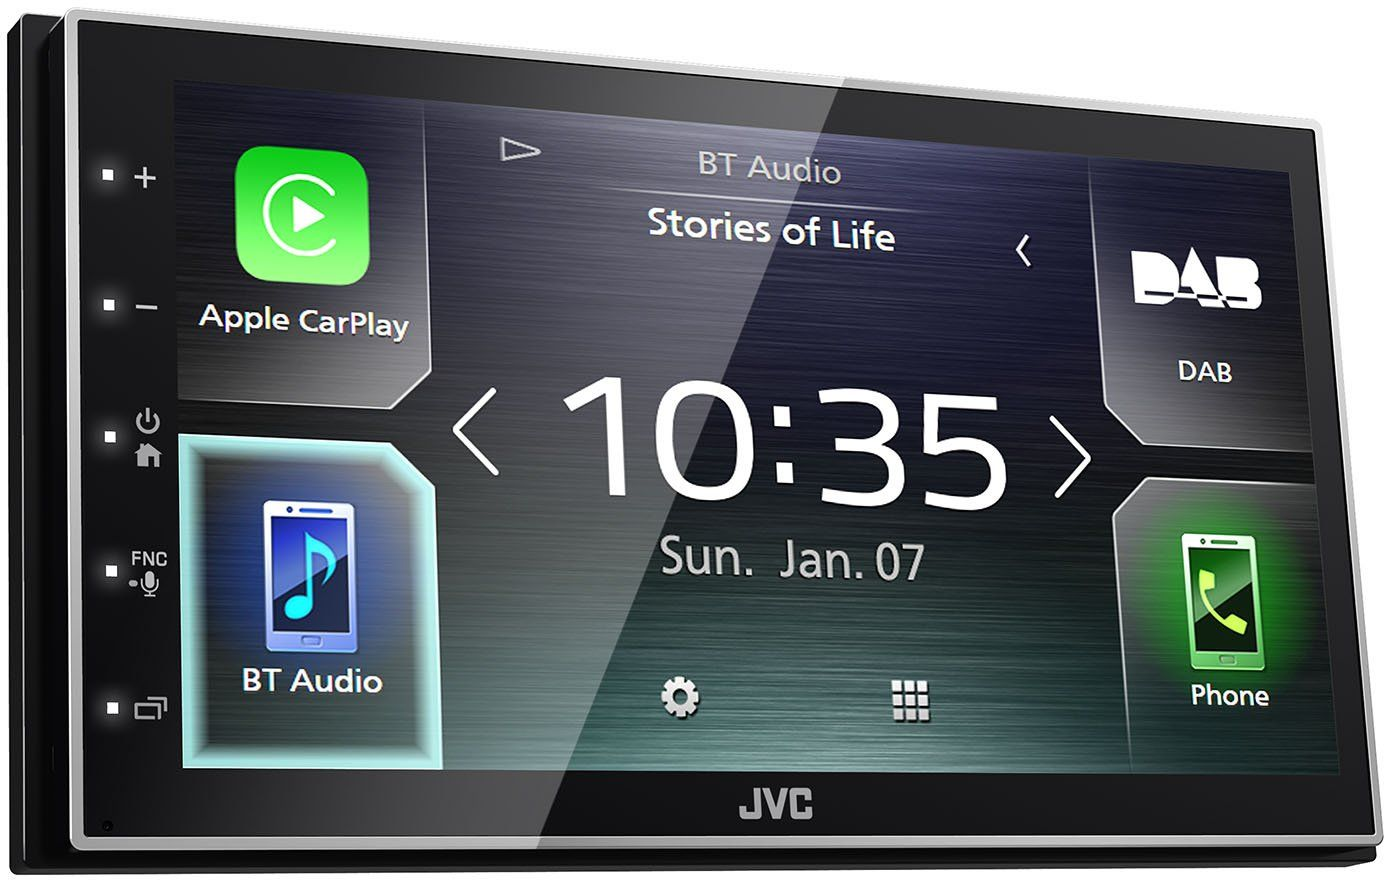 jvc_kw_bluetooth_dab_digital_radio_car